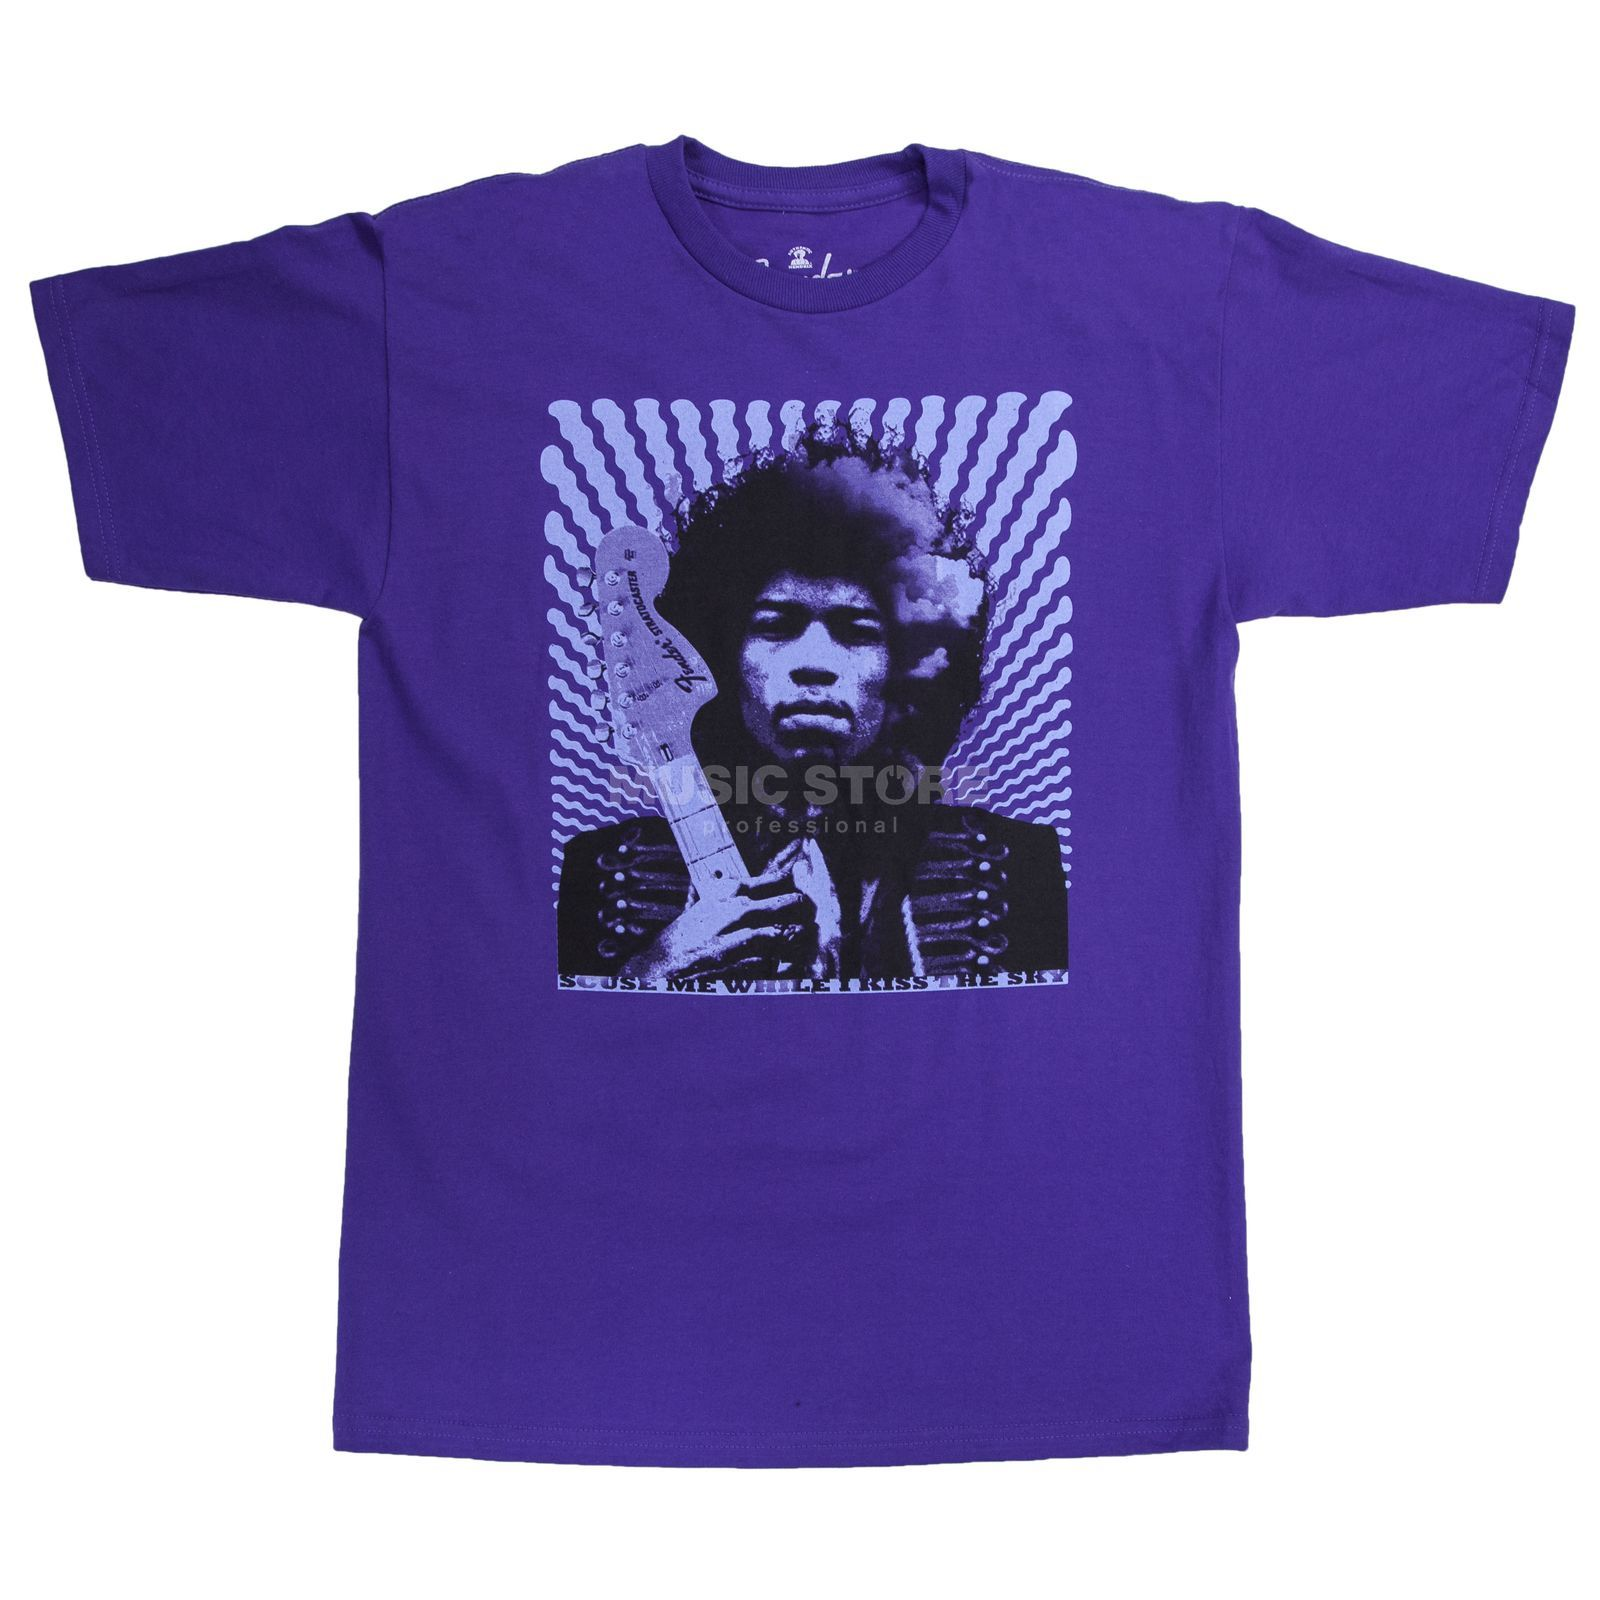 Fender Hendrix Kiss The Sky T-Shirt M Purple Produktbild